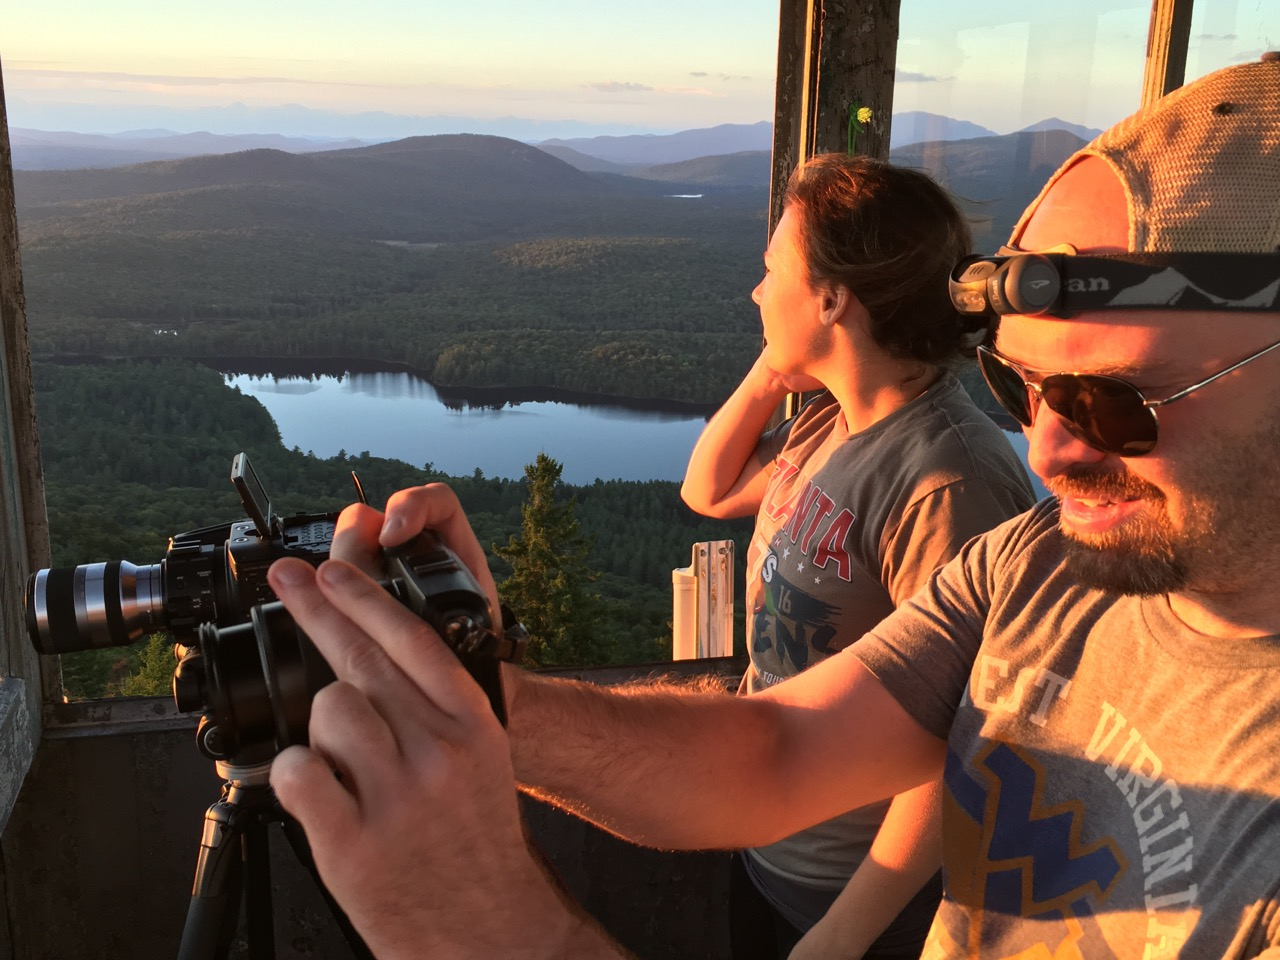 Matt, Cara and Sean hiked Goodnow Mountain at sunset to capture stills and time-lapse video.